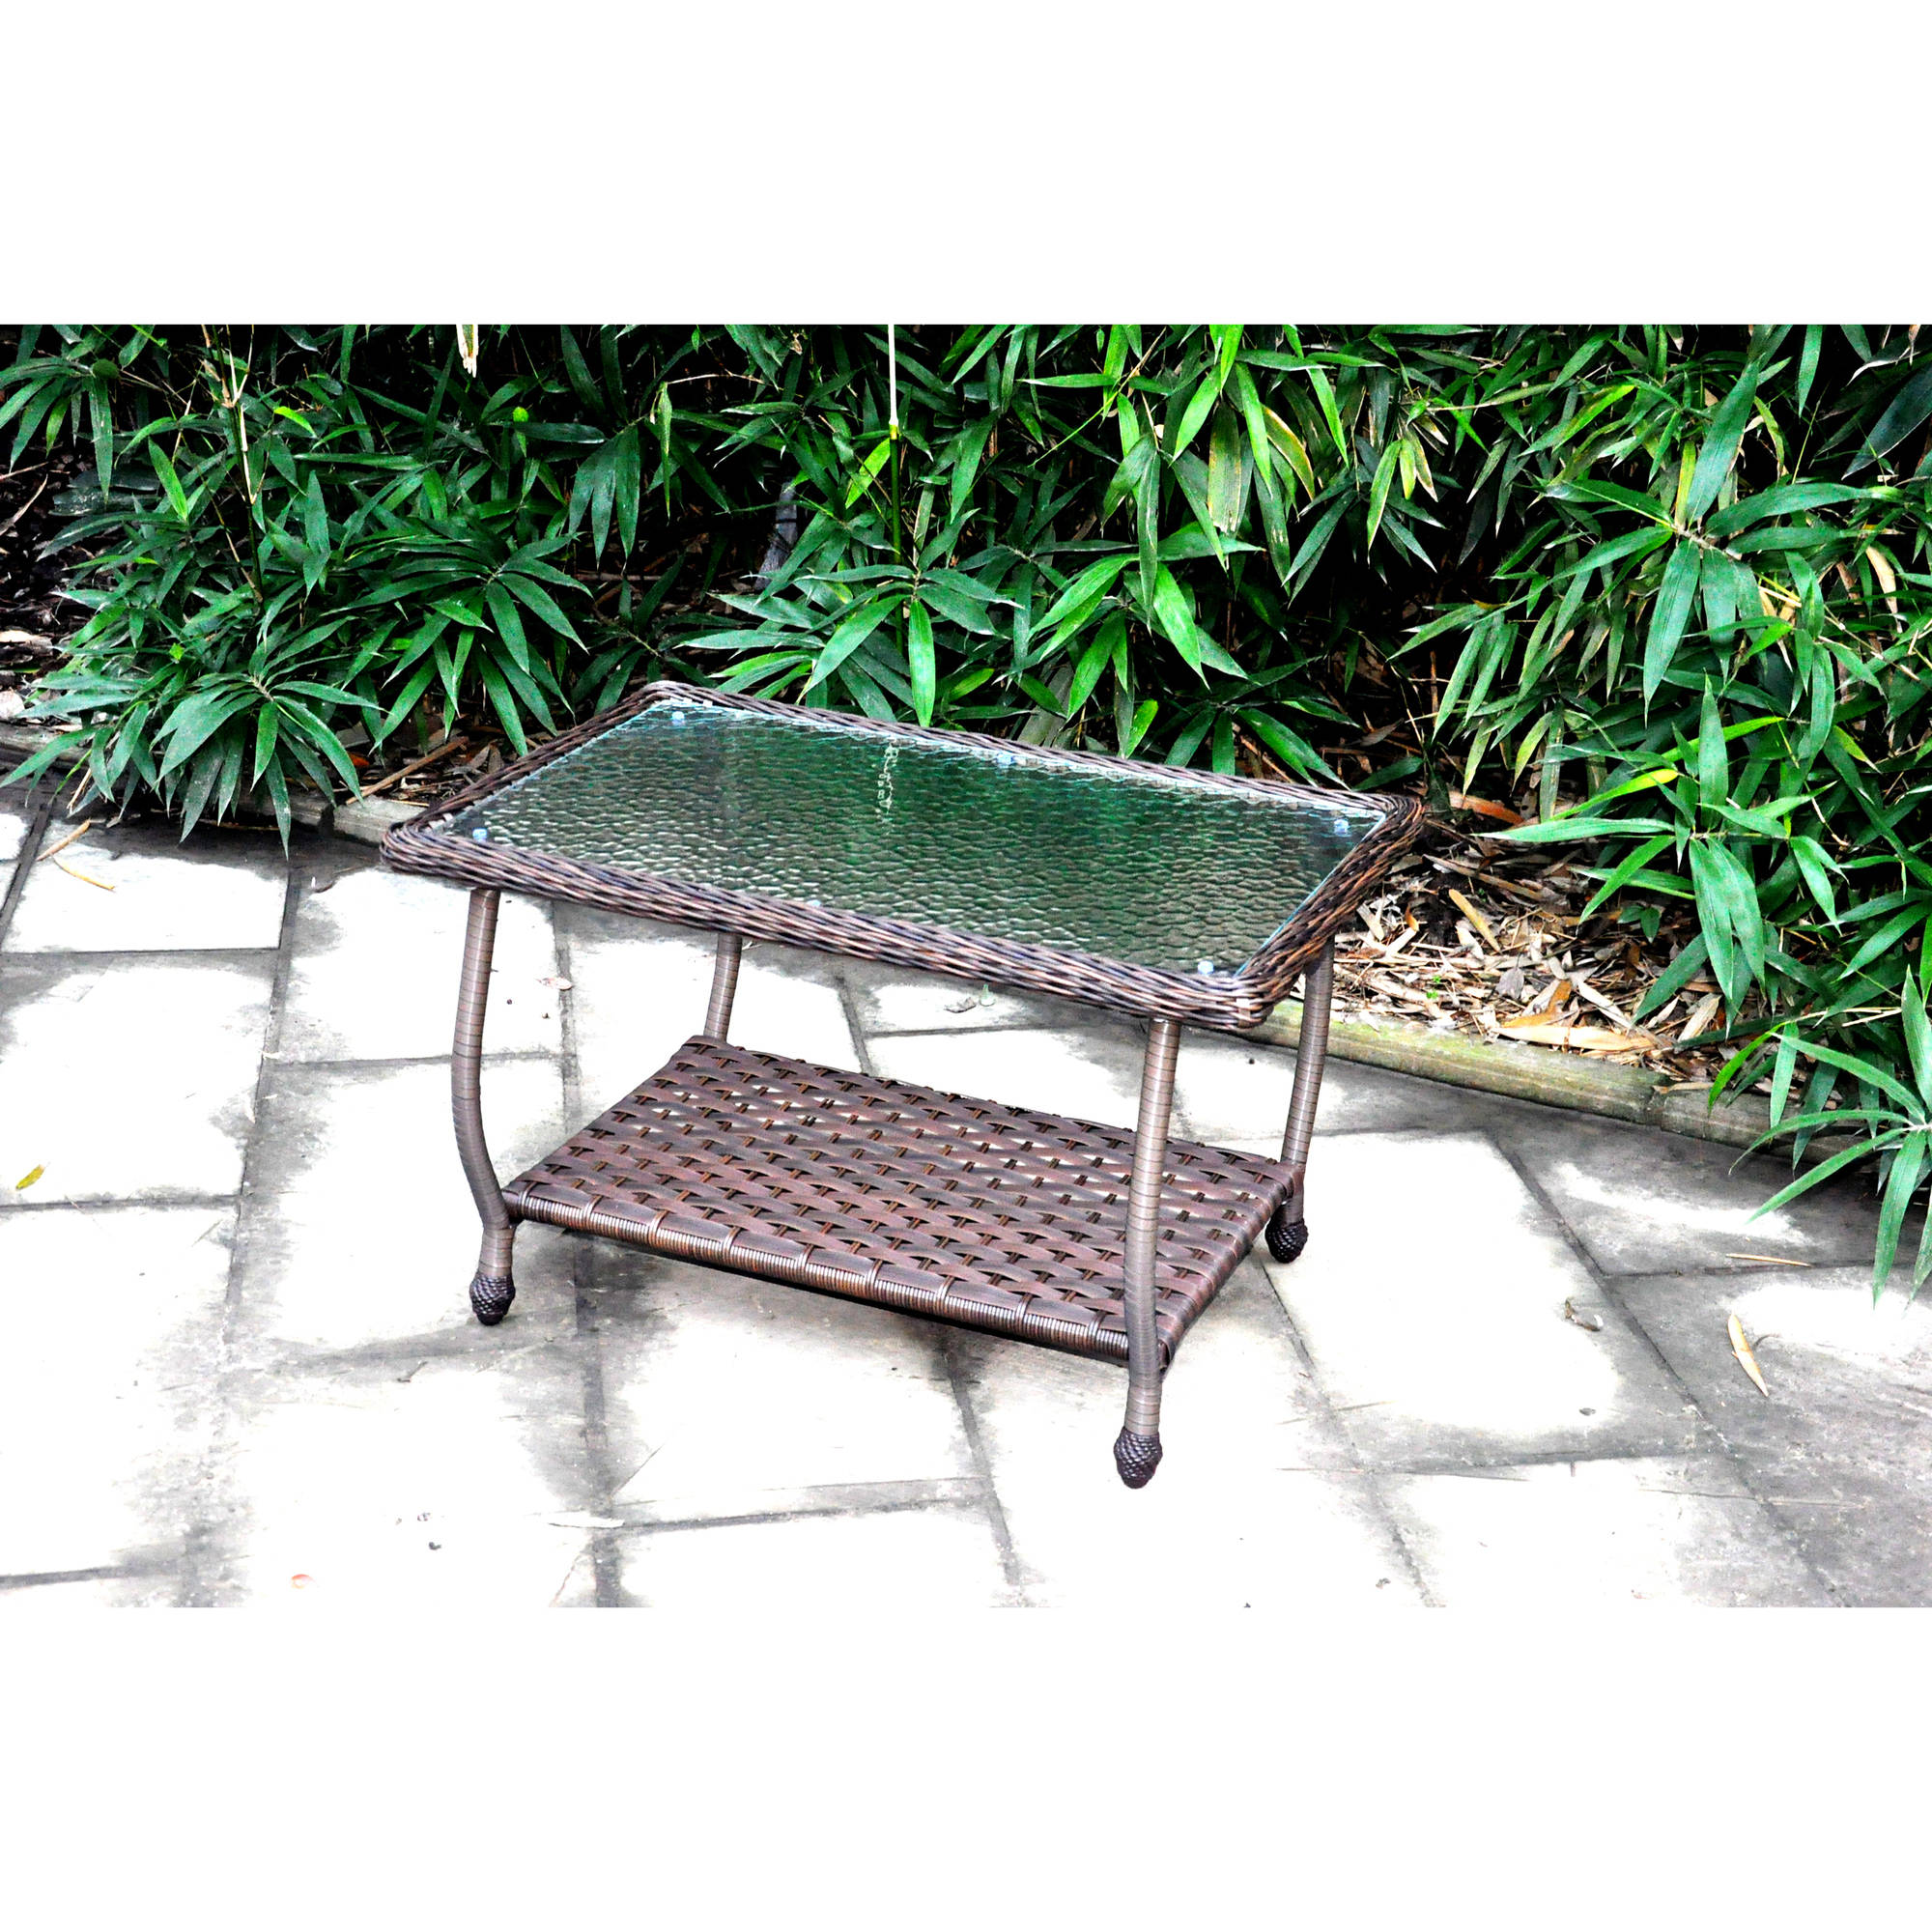 mainstays wicker coffee table brown round accent hairpin leg end monarch cappuccino marble bronze metal meyda tiffany lamps outside lawn chairs nice tables small grey farm trestle